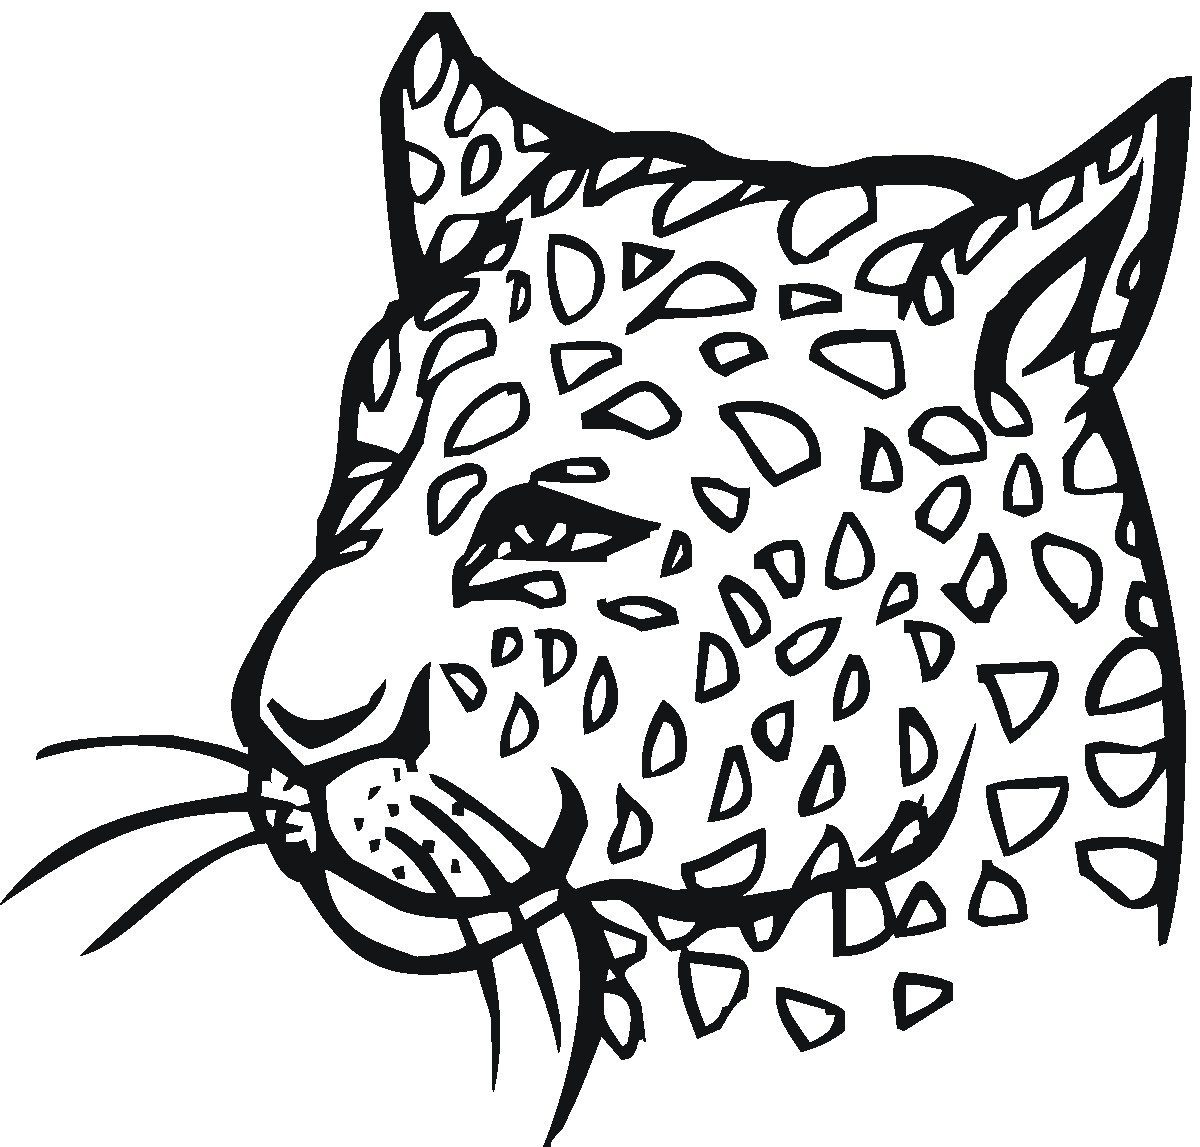 Amur Leopard Drawing At Getdrawings Com Free For Personal Use Amur